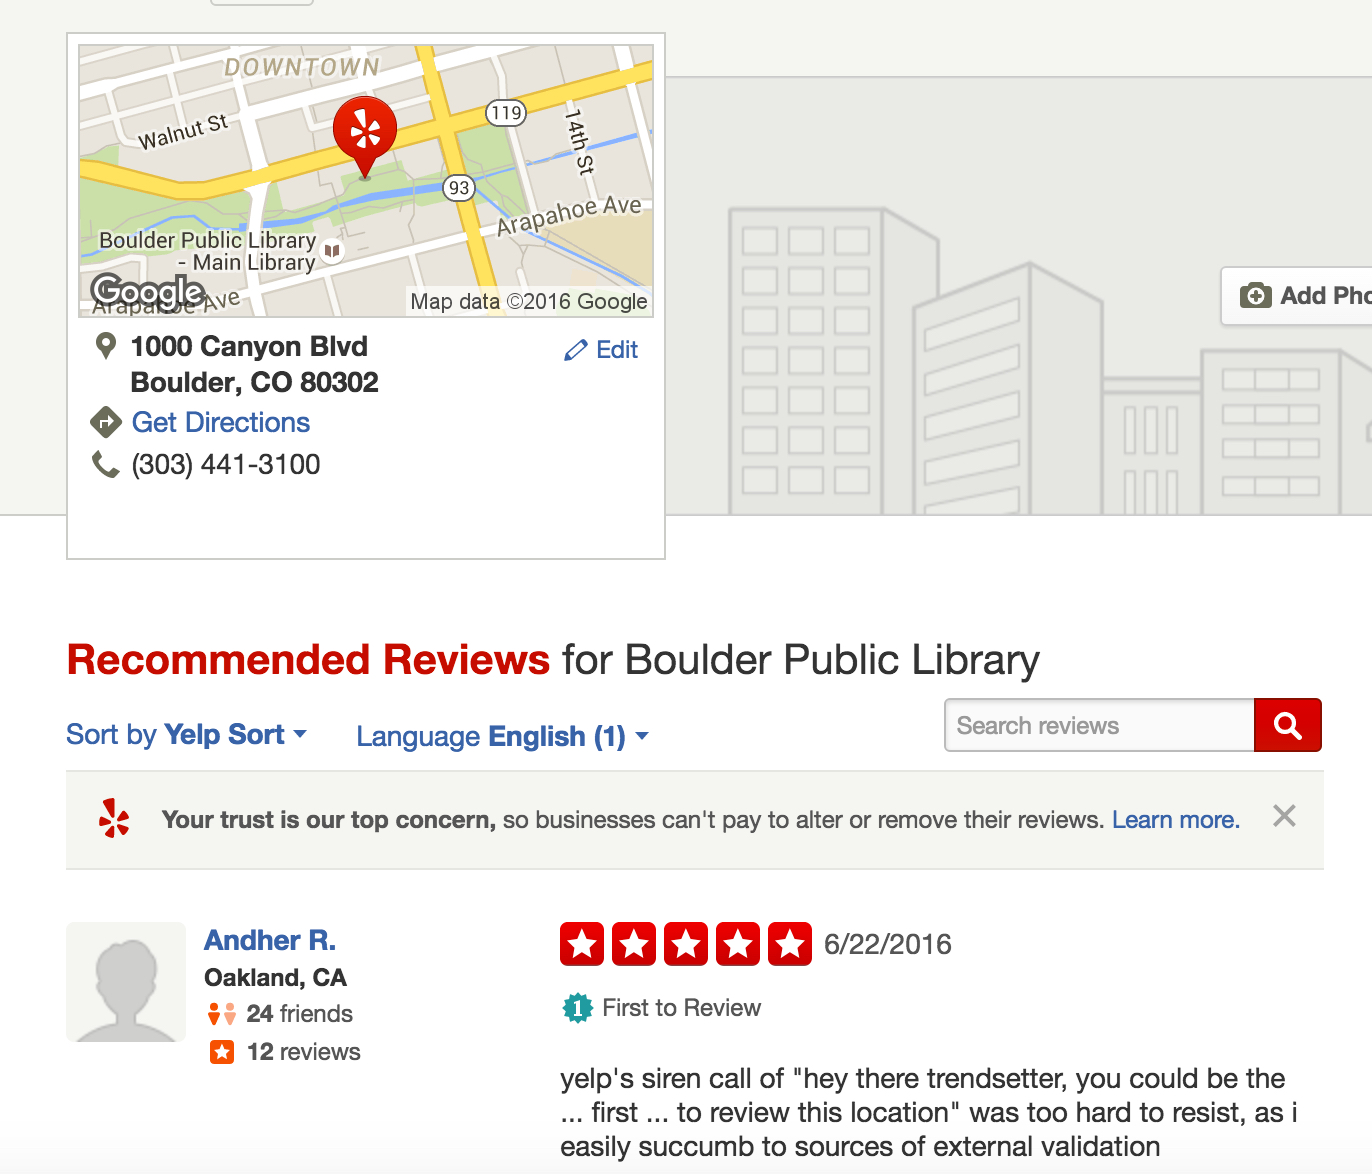 boulder public library, 5 stars